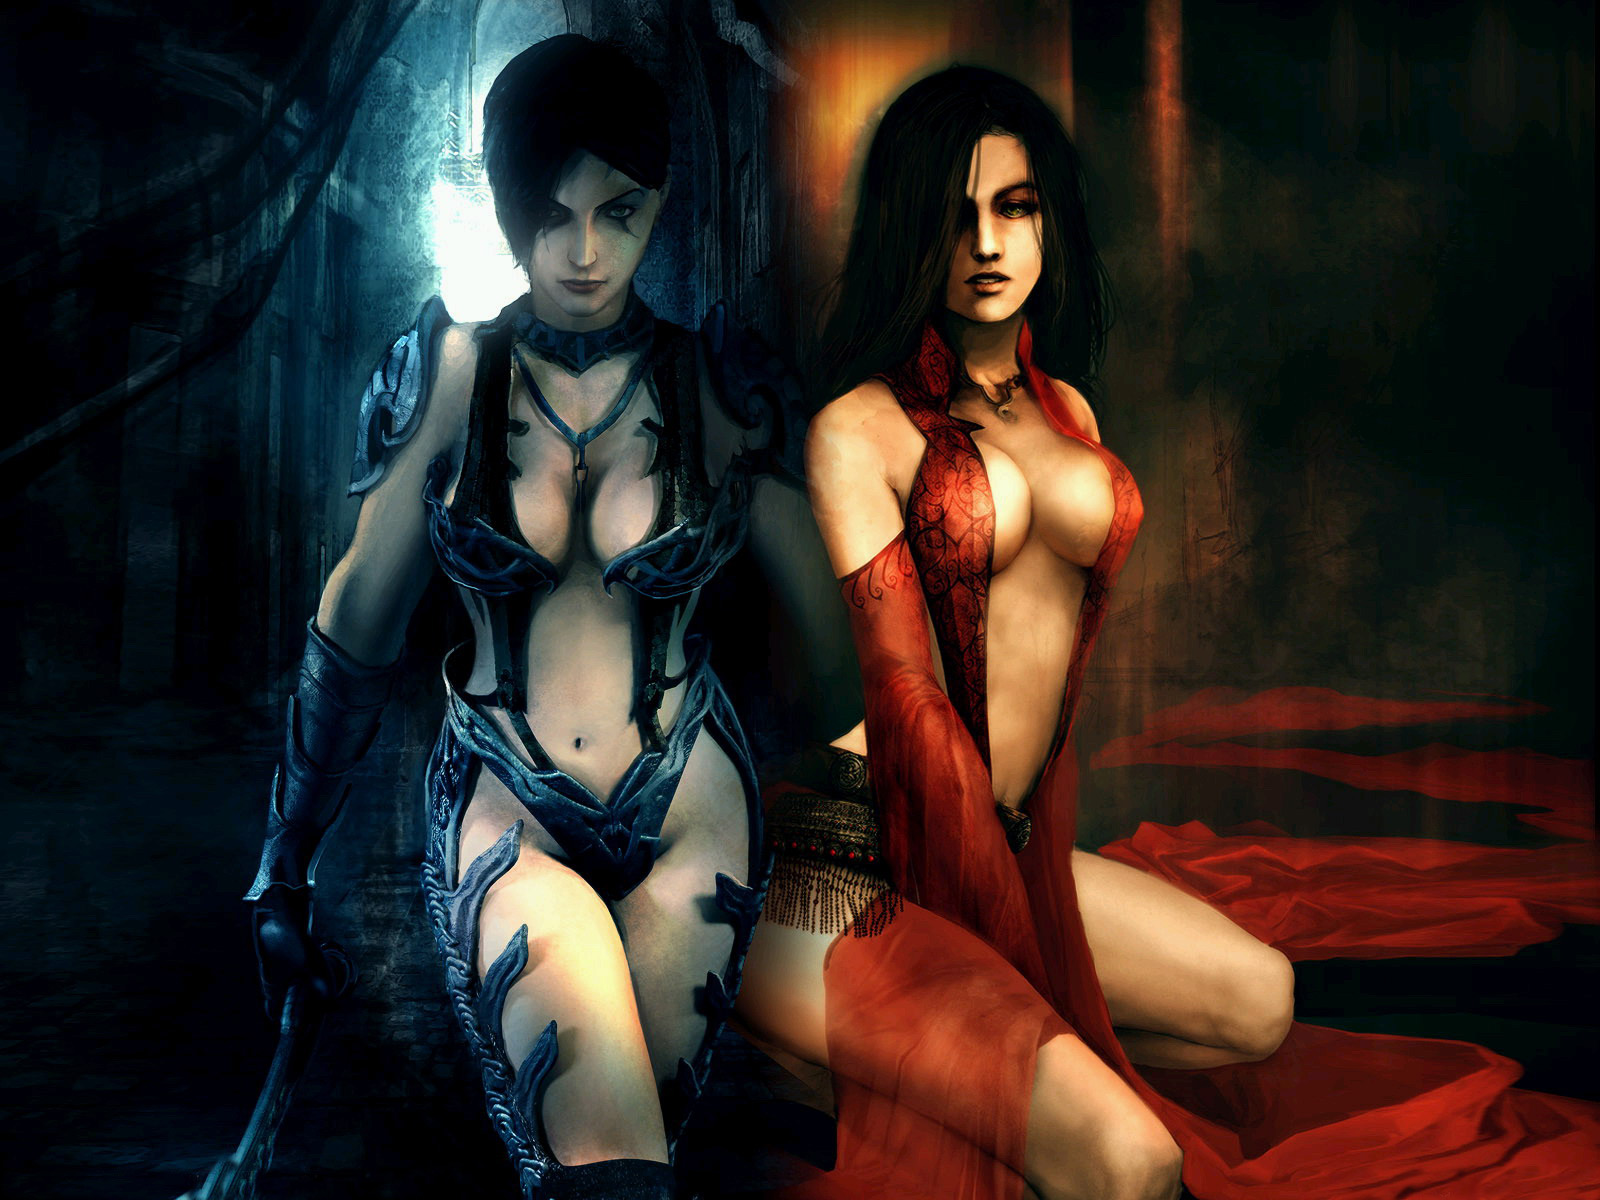 Prince of persia warrior within kaliena sex  adult image